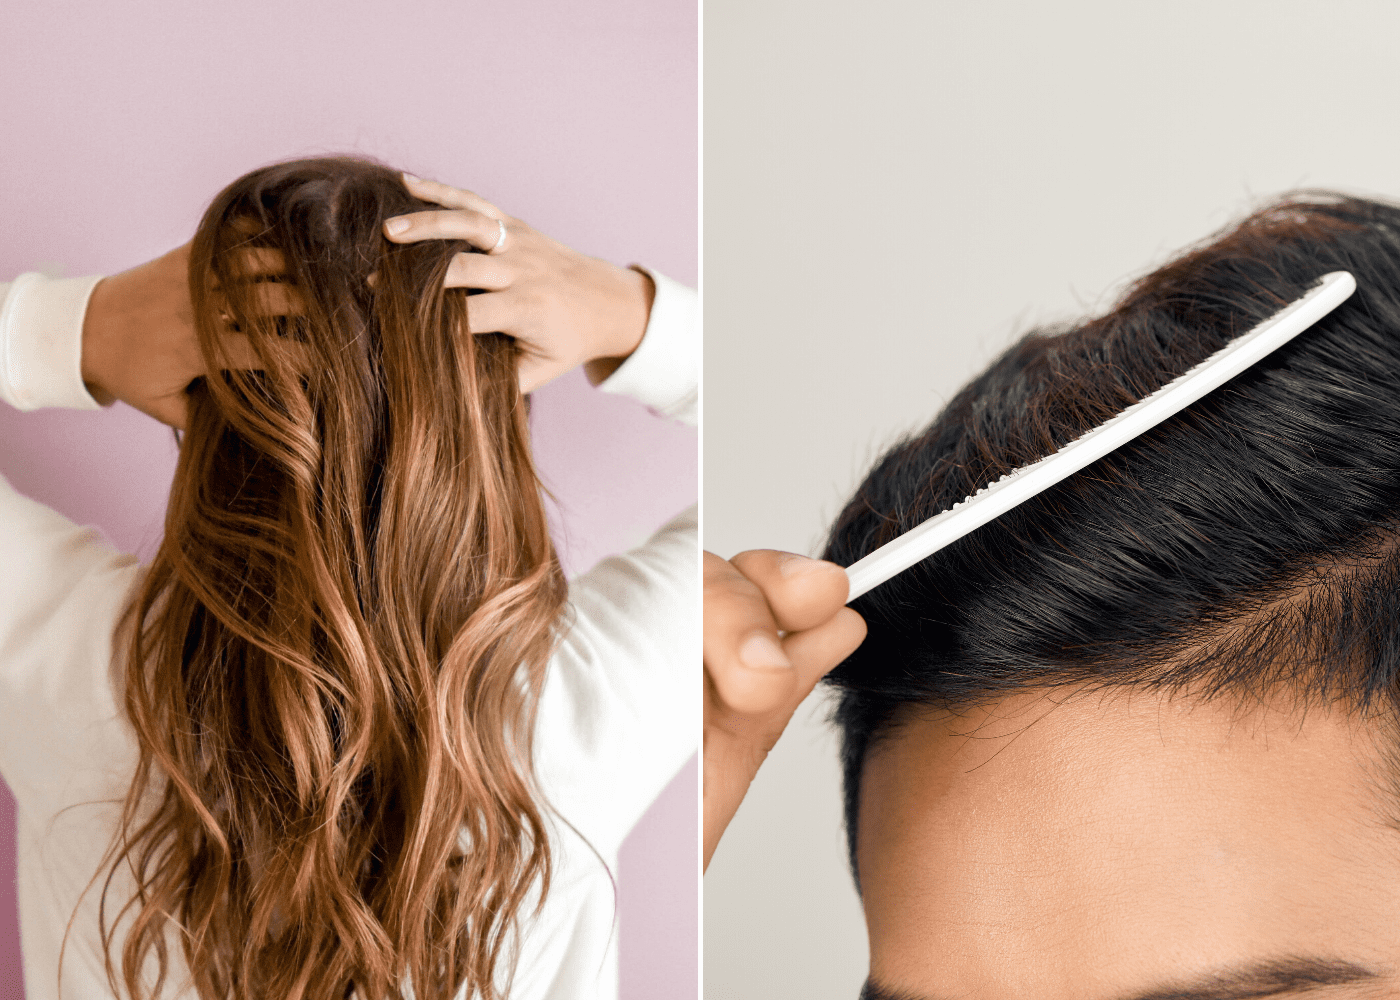 Hair loss, be gone: Why you should try double cleansing and tonic for your scalp